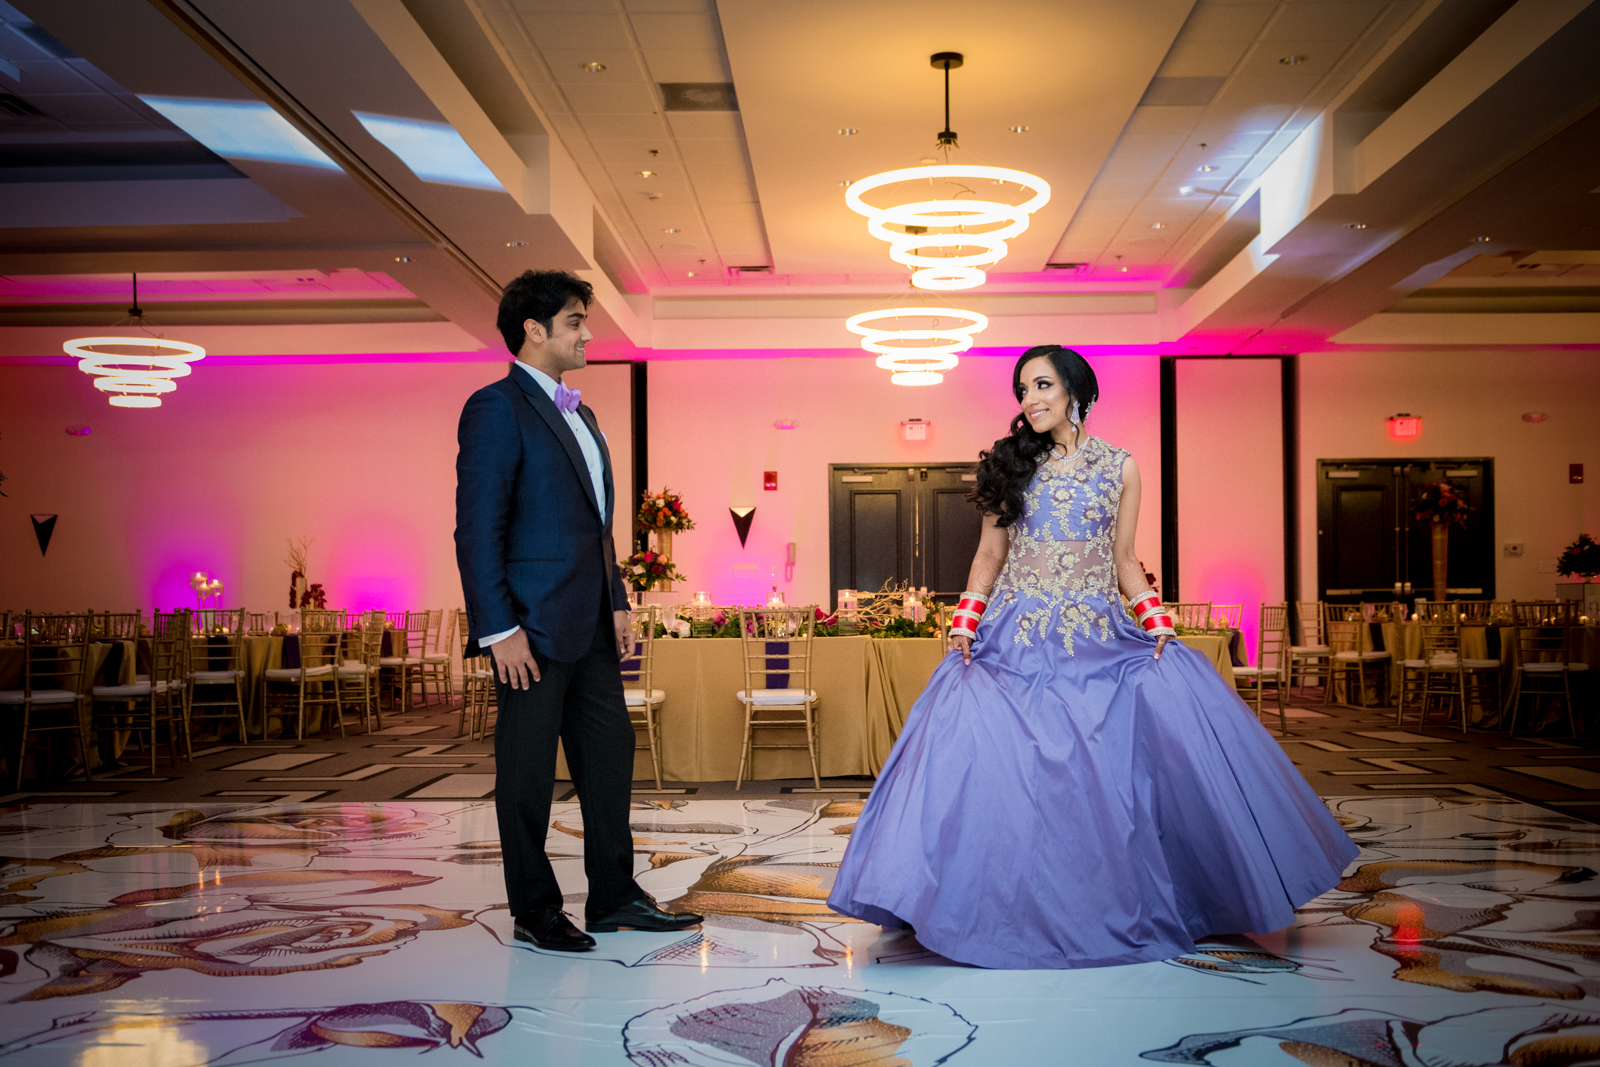 Boston Indian Wedding | Neha + Kashyap - MUSKAAN PHOTO + VIDEO